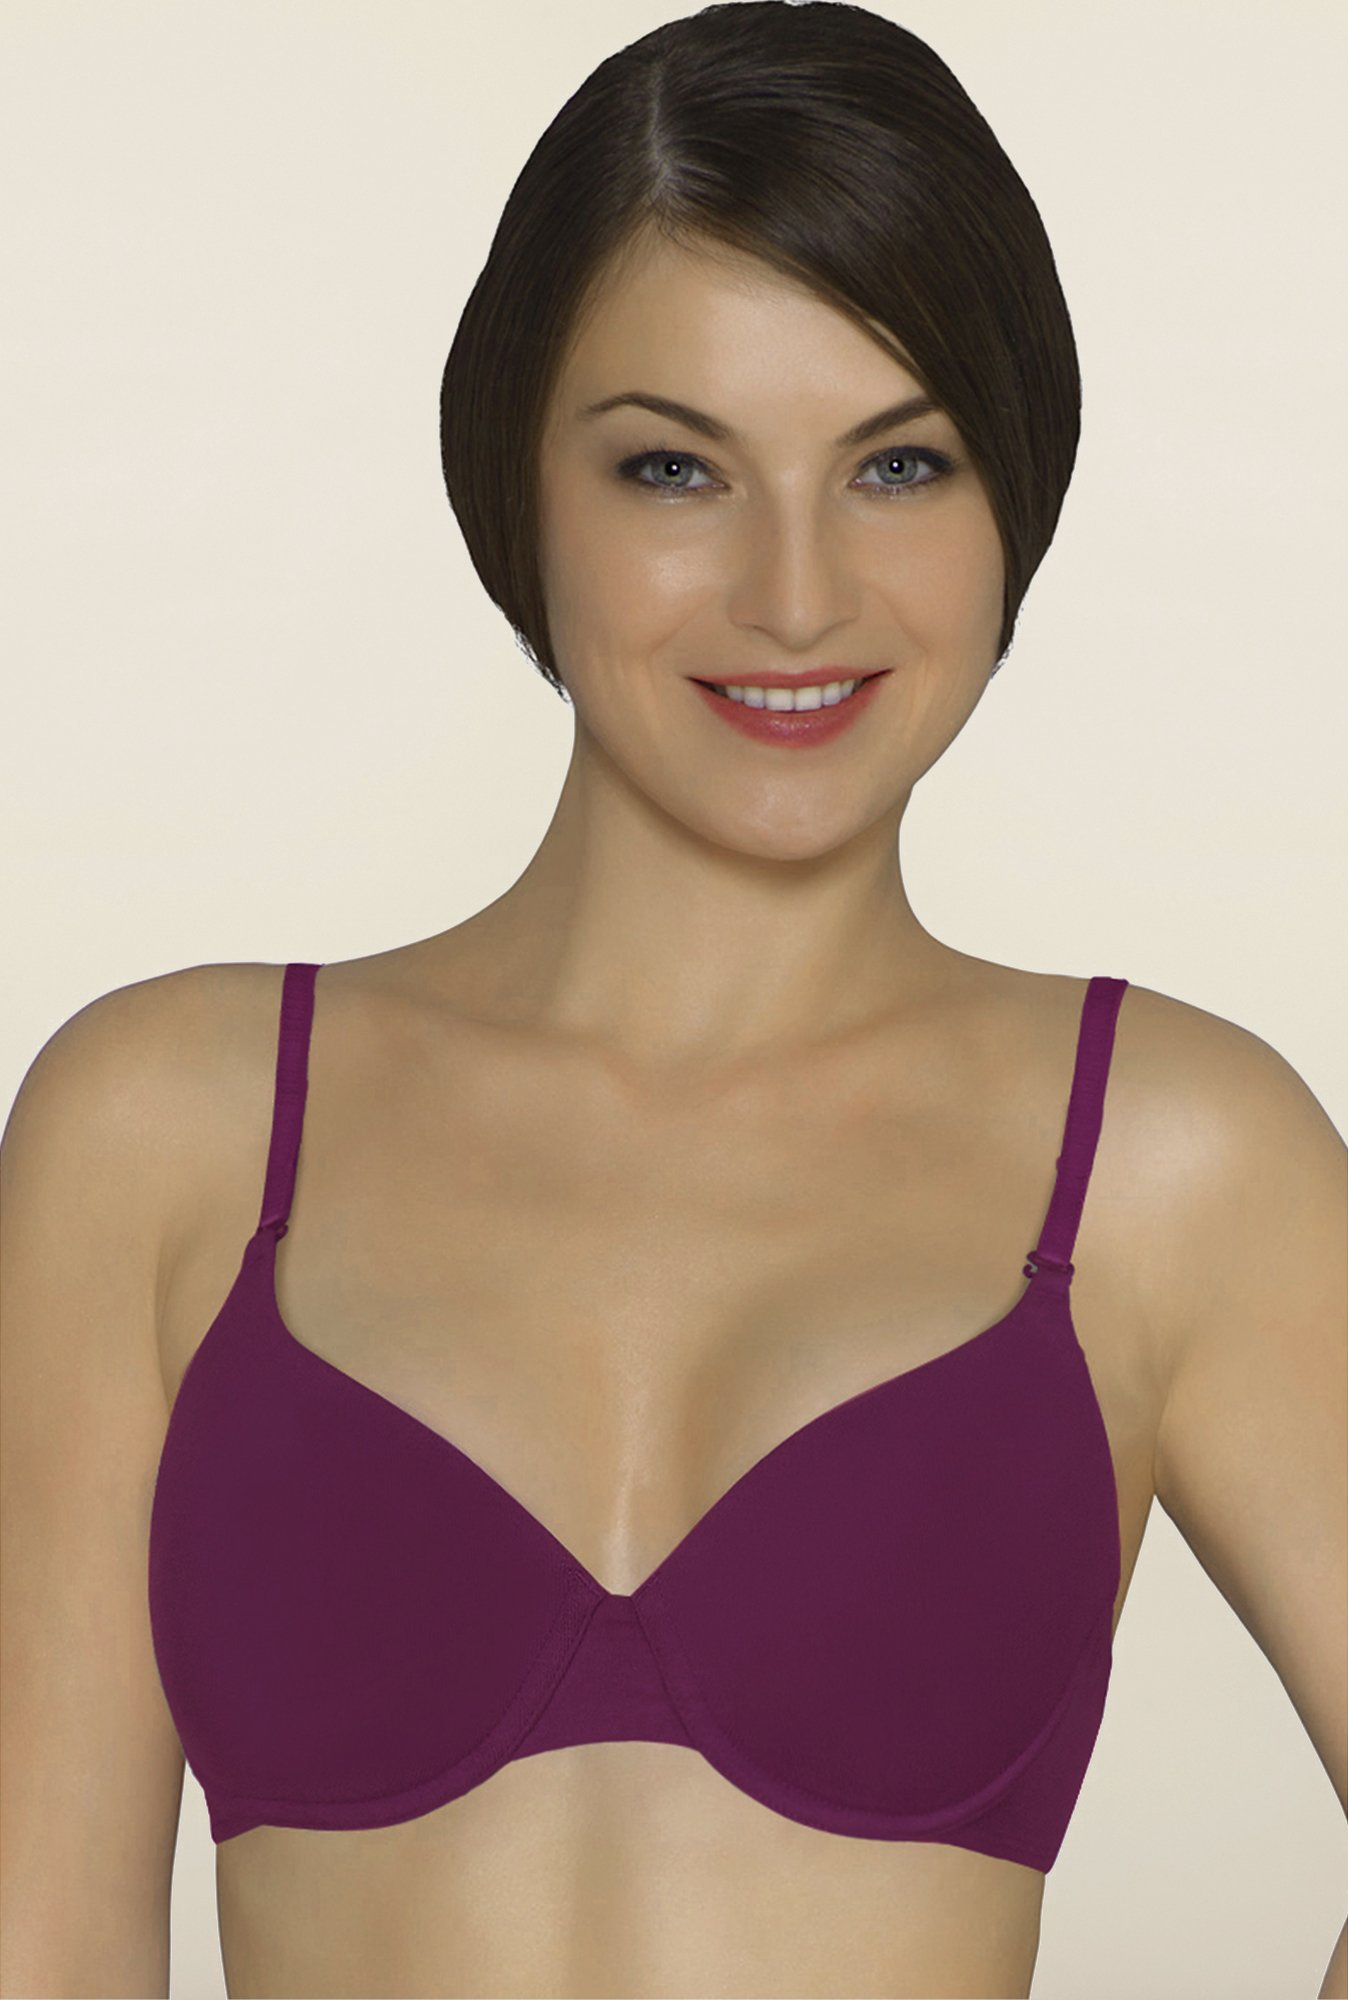 Amante Purple Padded Bra